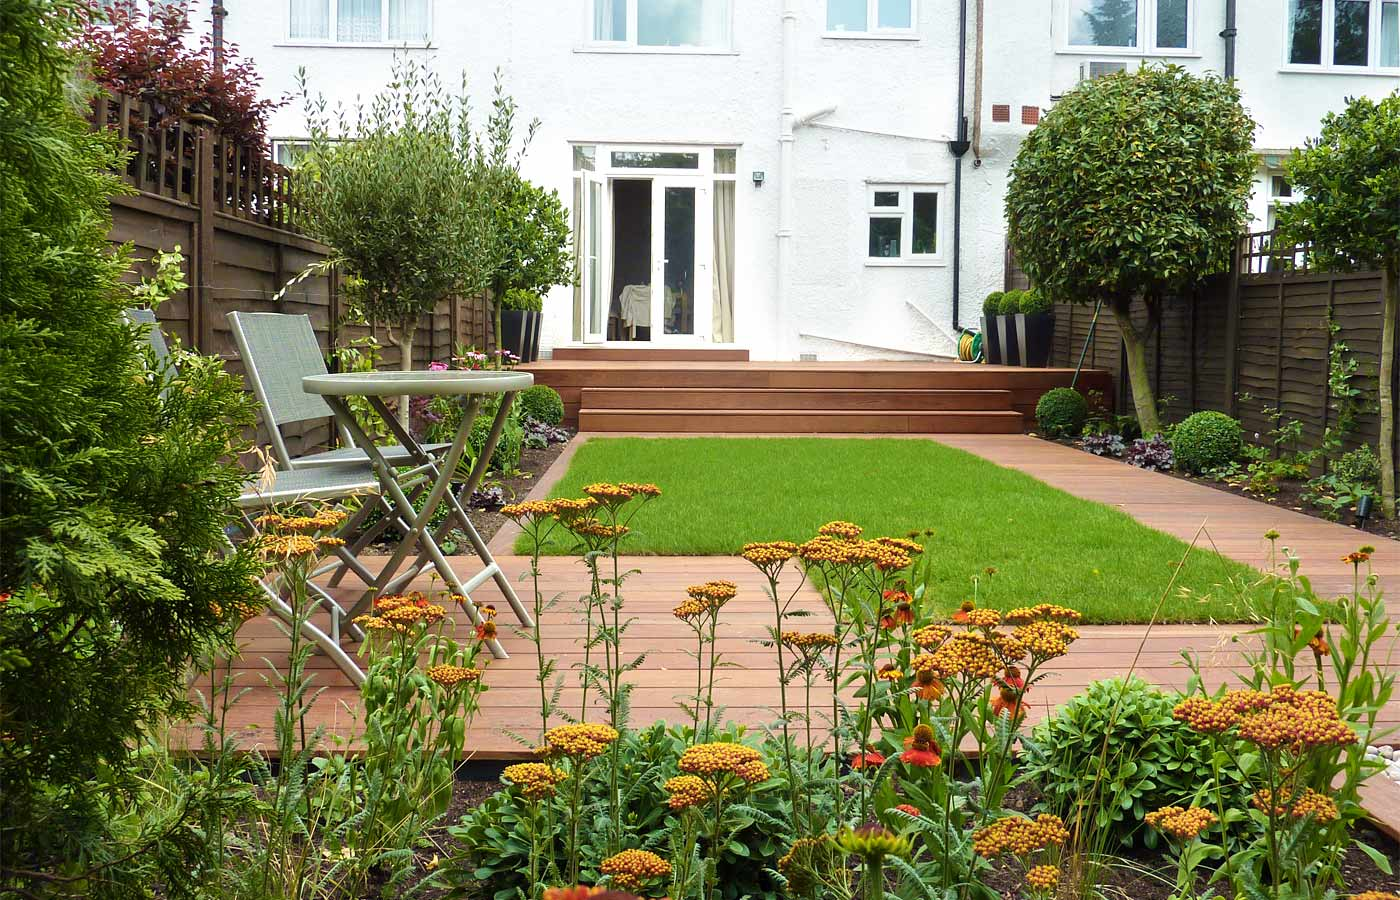 Contemporary garden design london for Small garden ideas uk